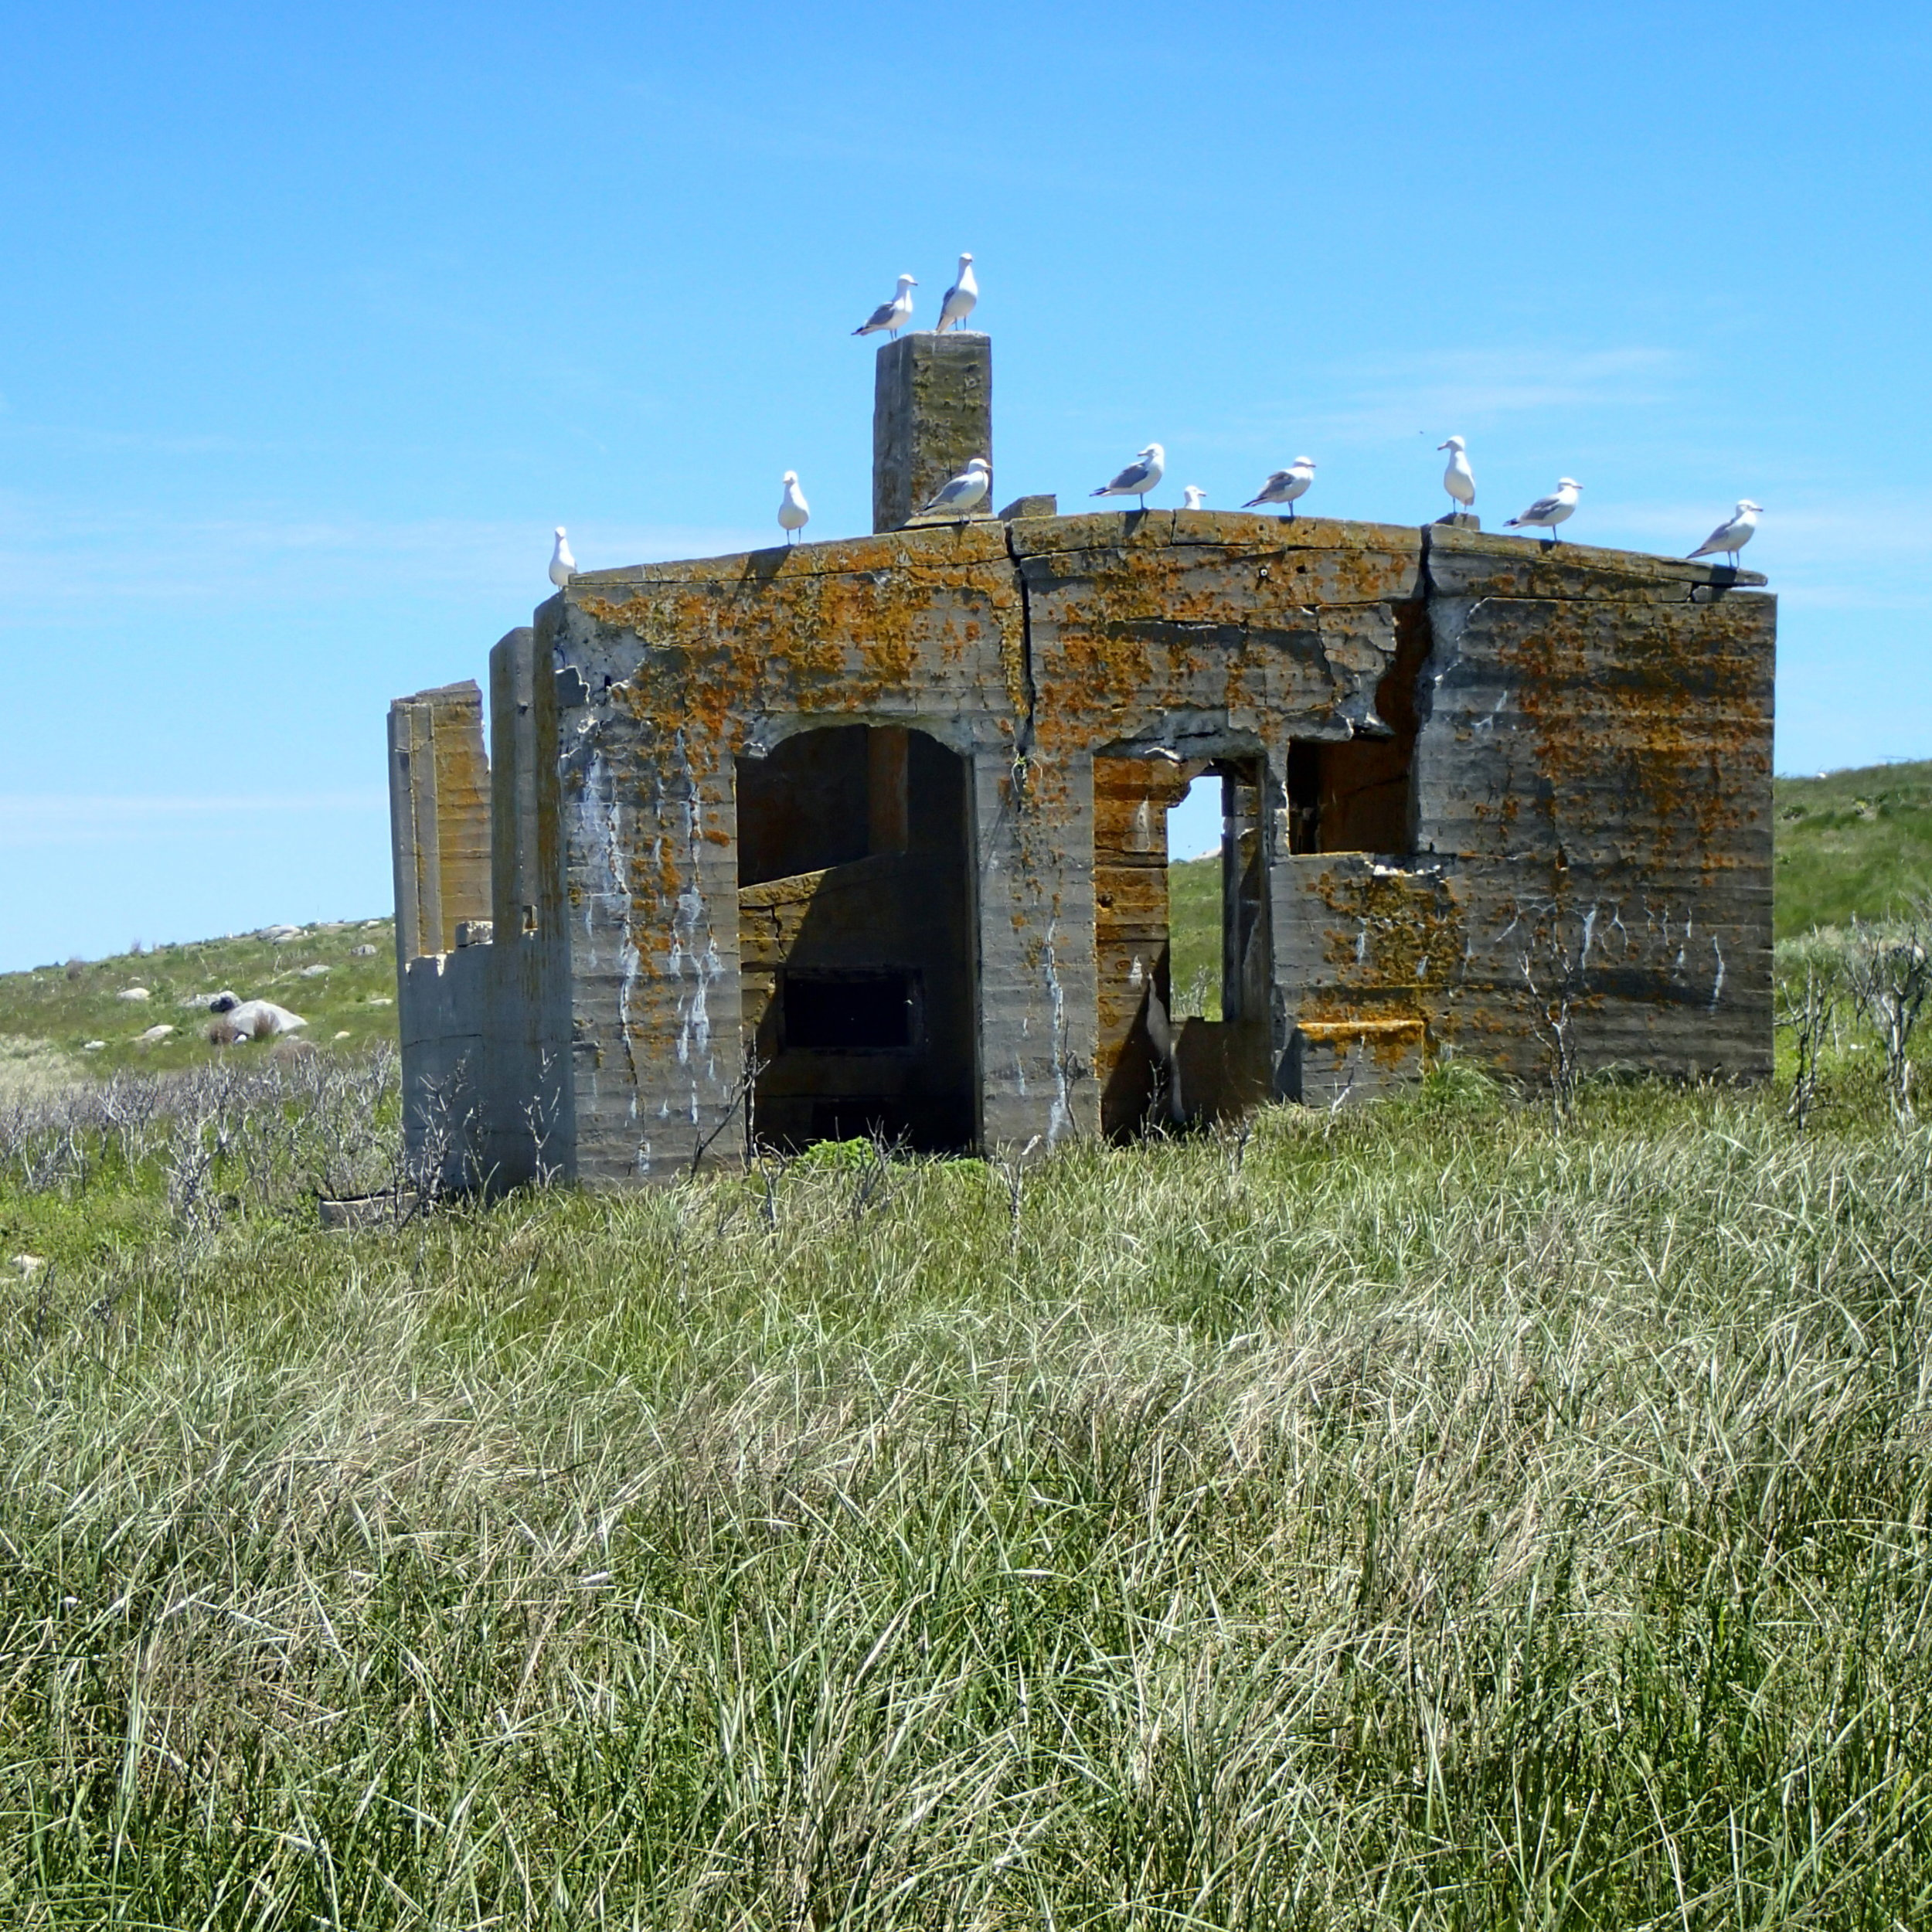 More than a century has taken its toll on the leper colony's laundry building on the windswept Northwest shore of the island. Many seafarers passing through Buzzards Bay are unaware of the sad story behind the historic ruins.